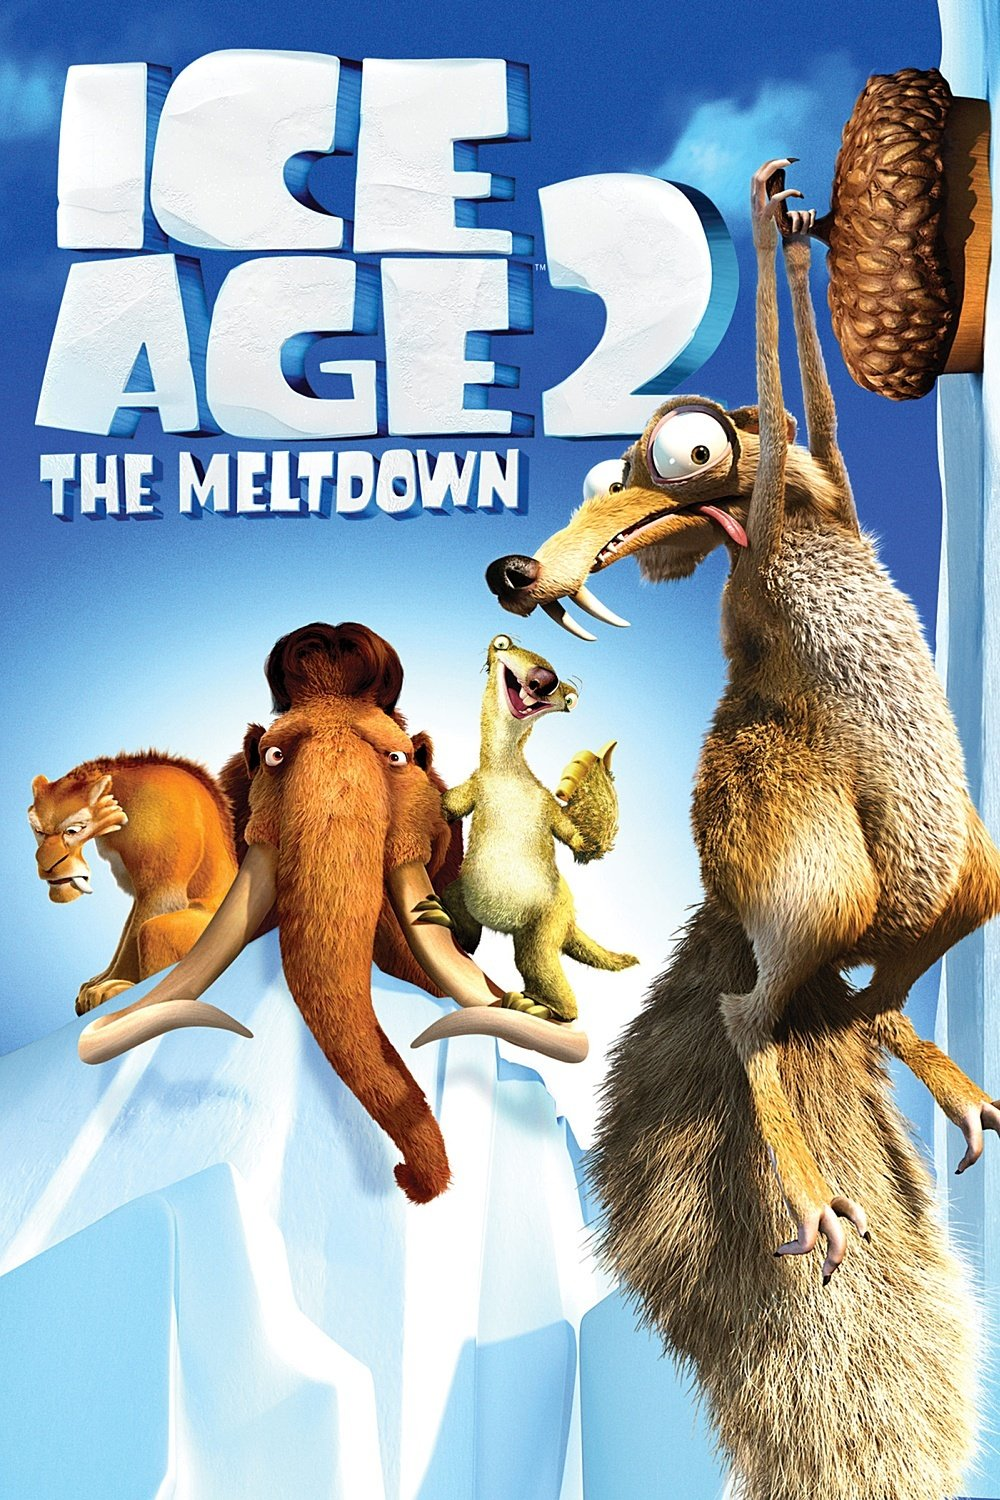 ice age poster part 2 2006 high quality HD printable wallpapers manny the meltdown scrat